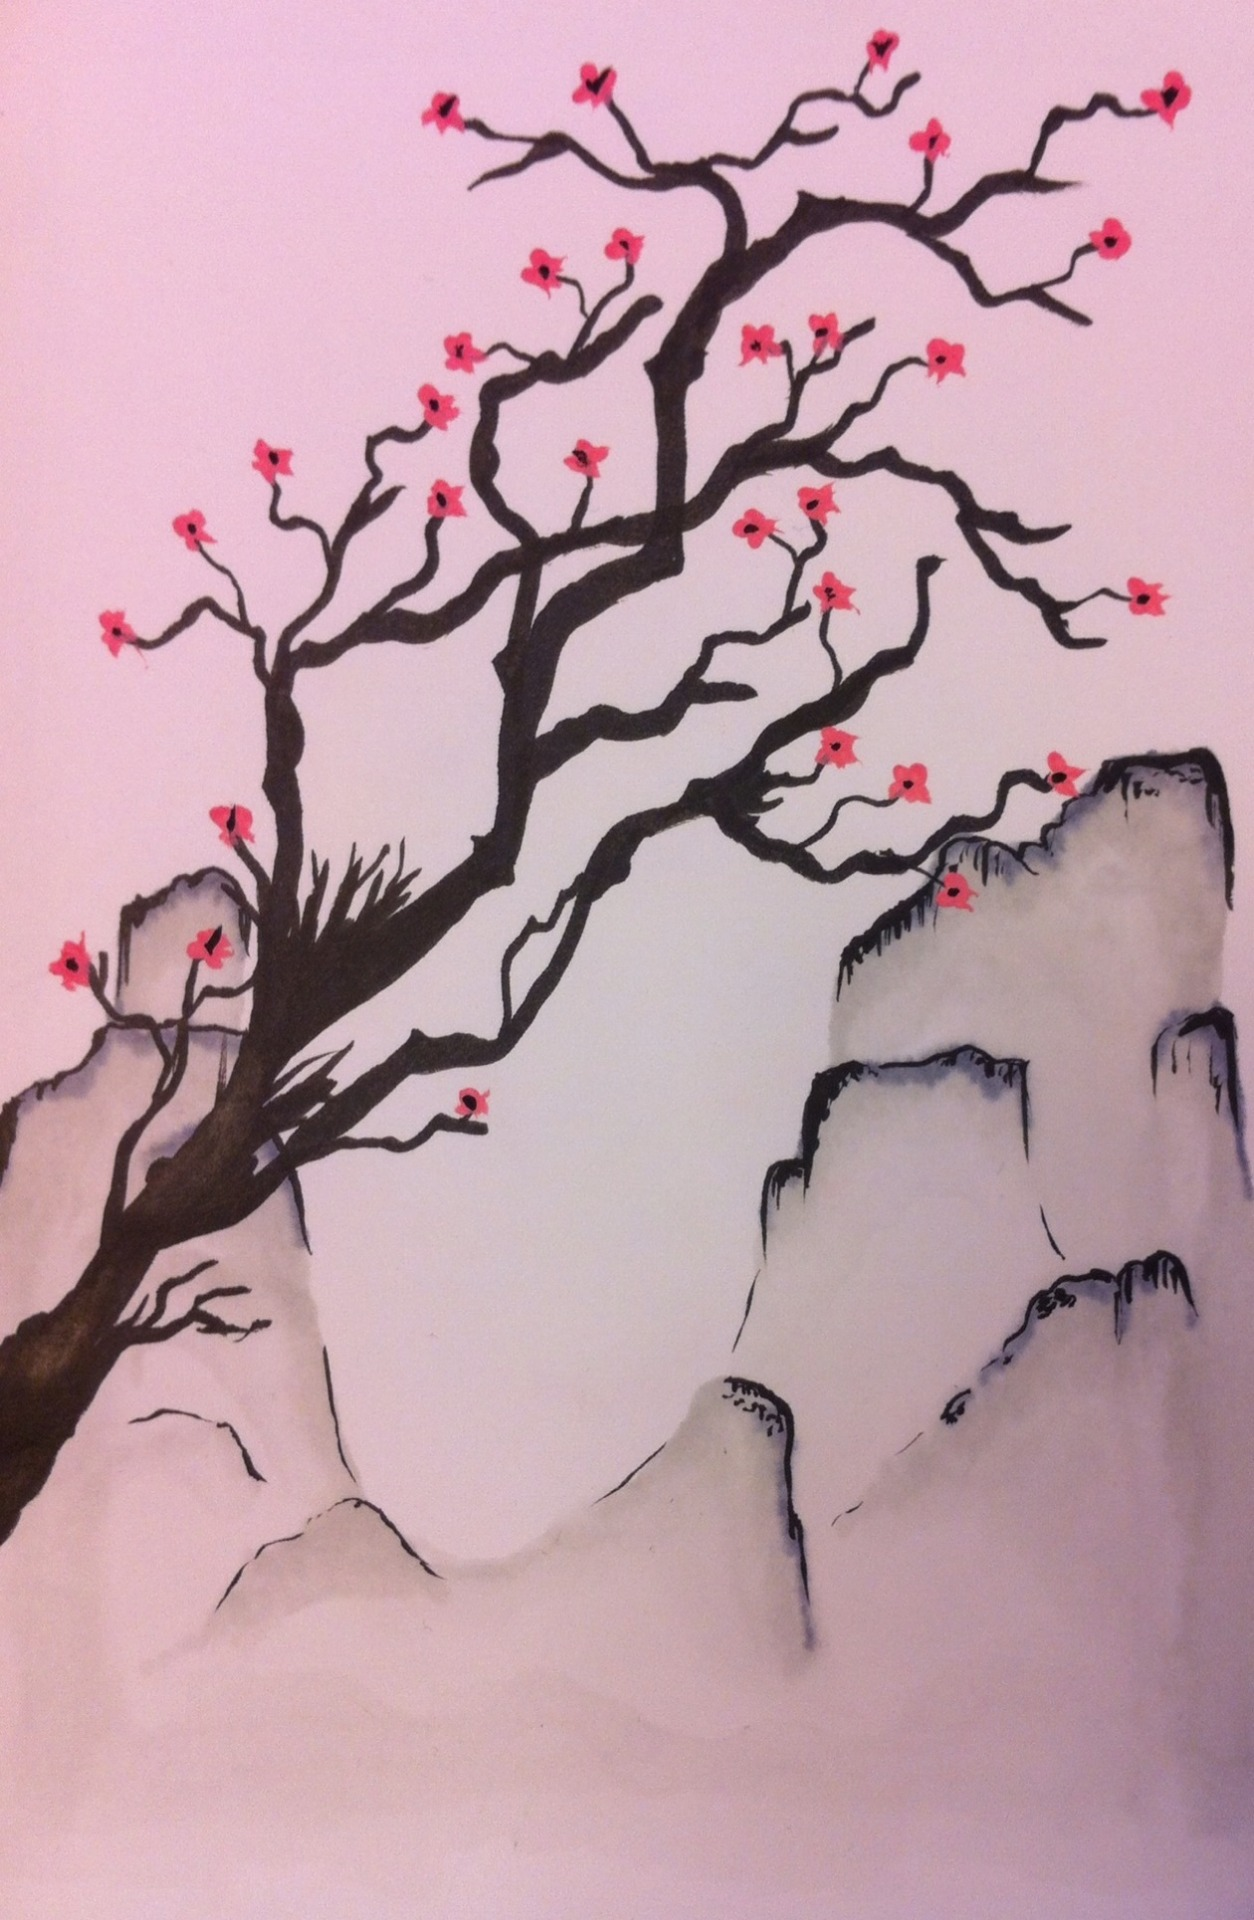 Cherry blossom illustration.